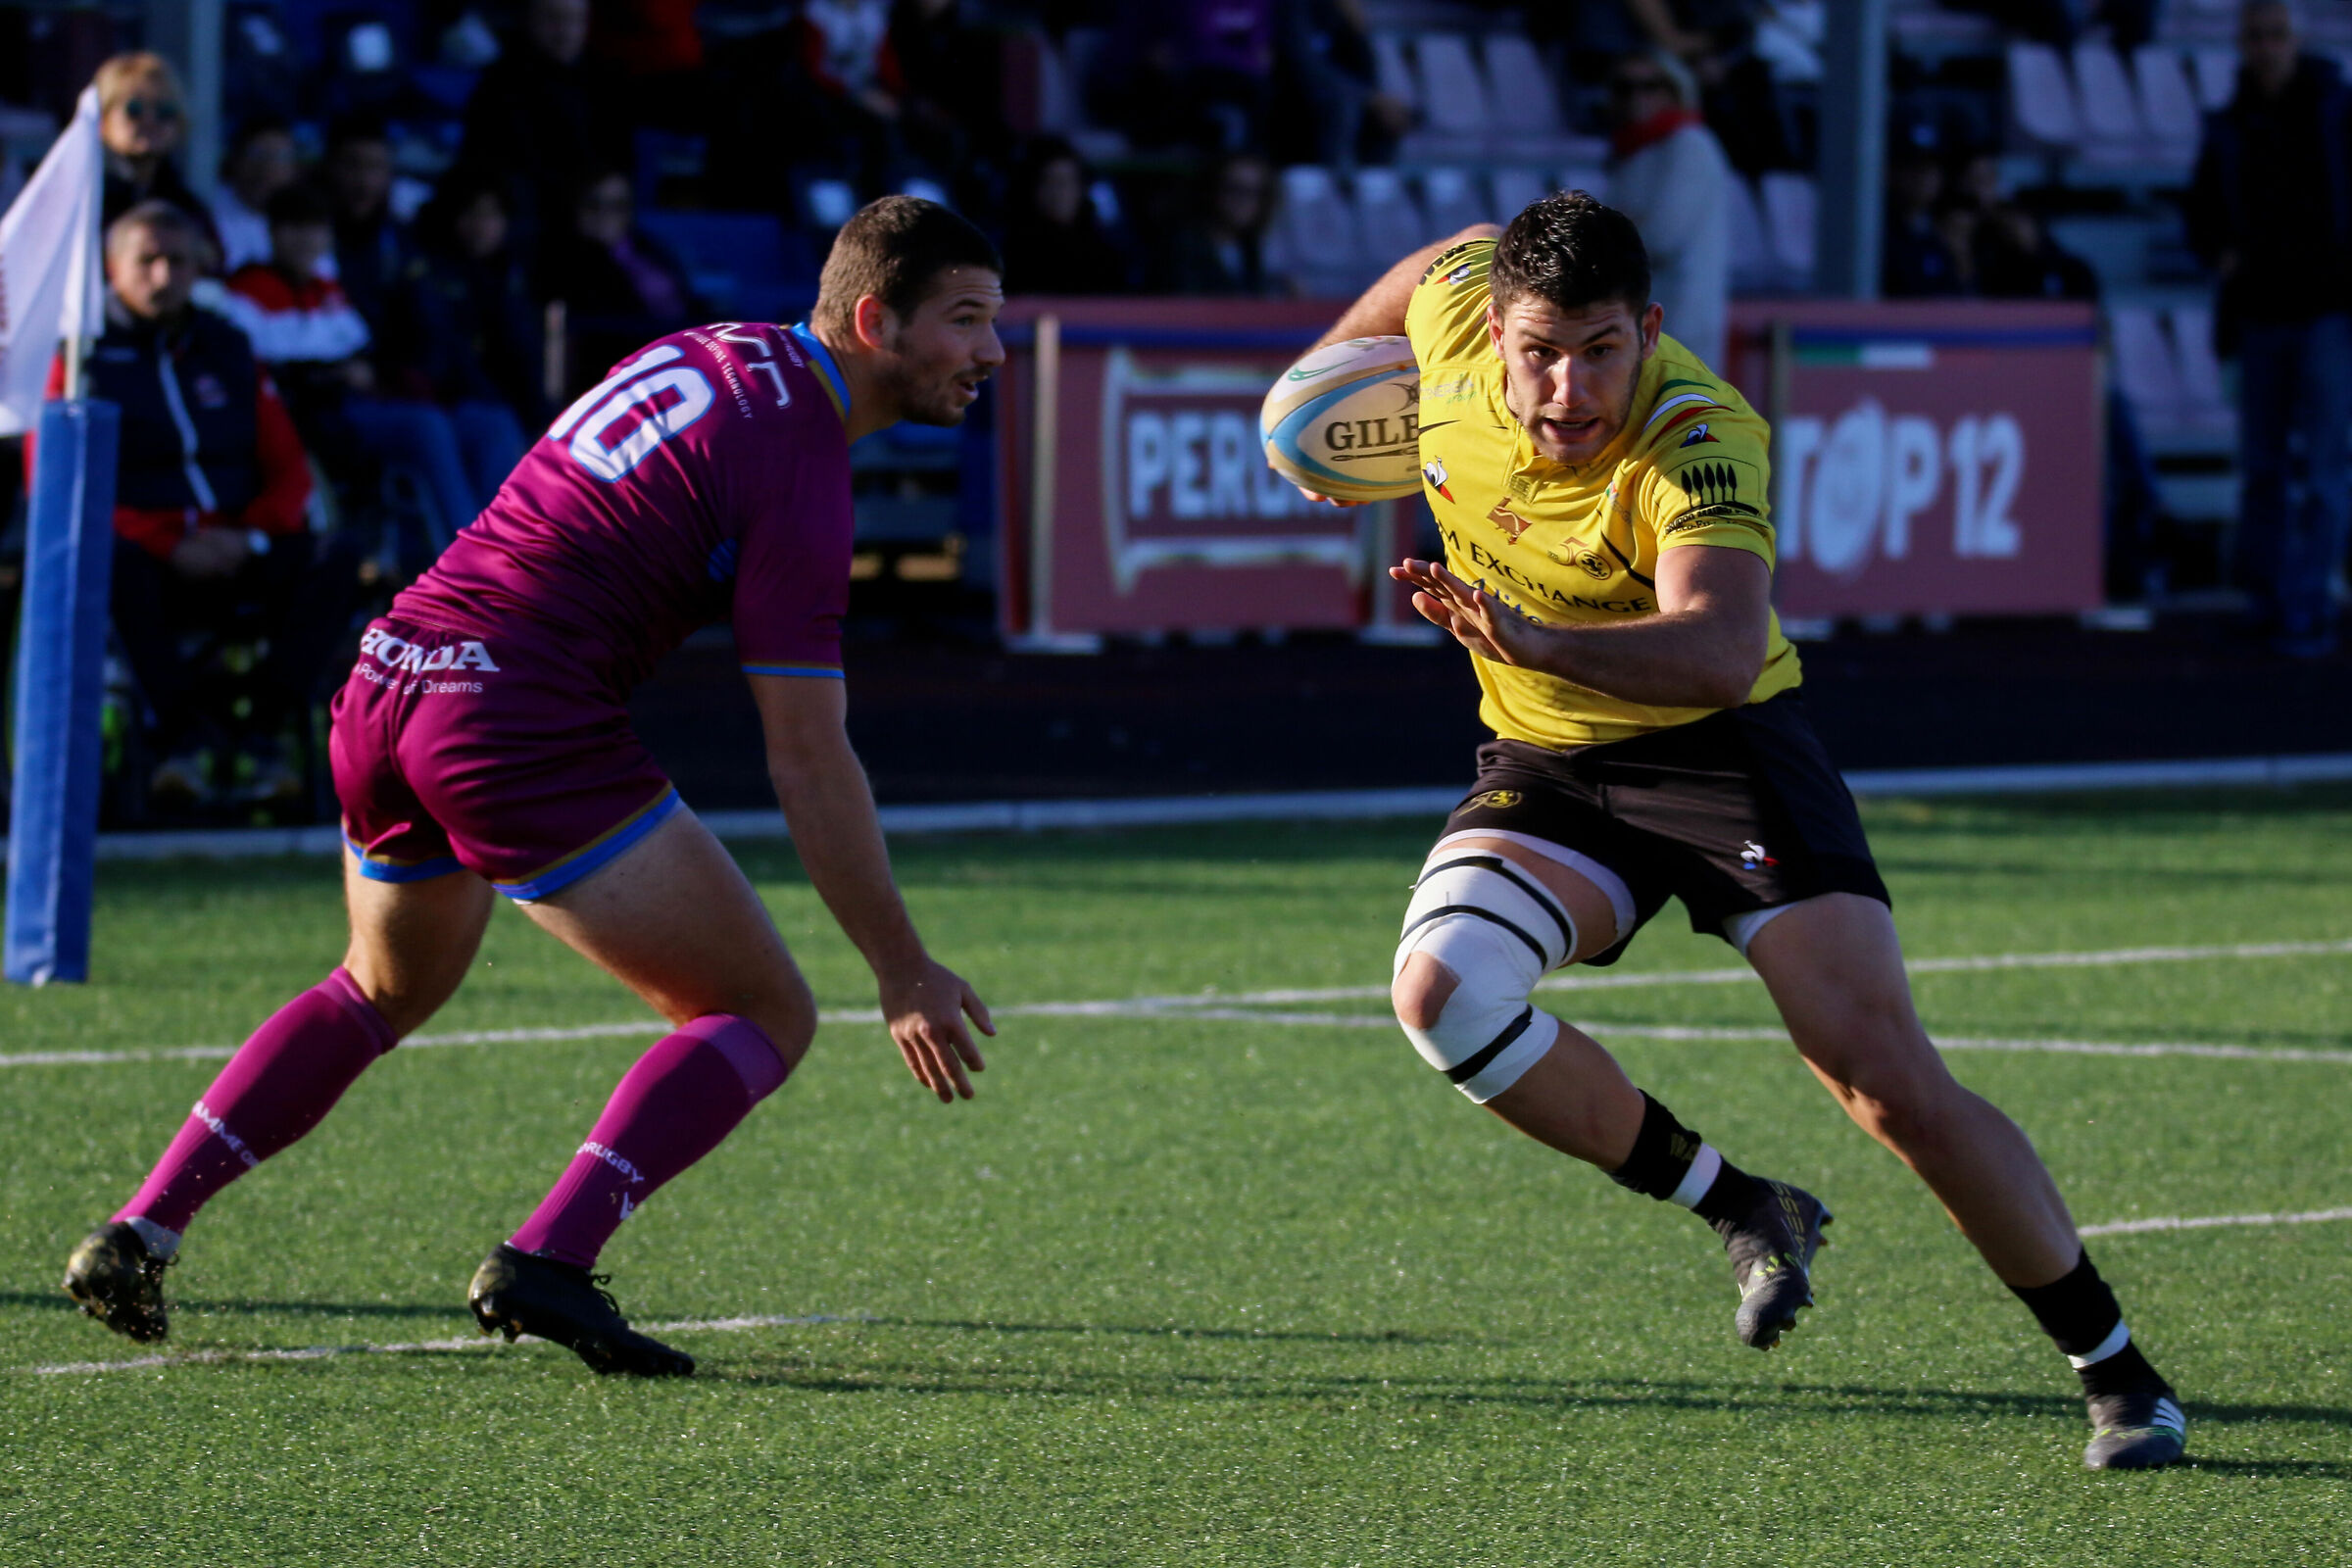 Flames Gold Rugby Vs Exchange Viadana 31-27 TOP12...